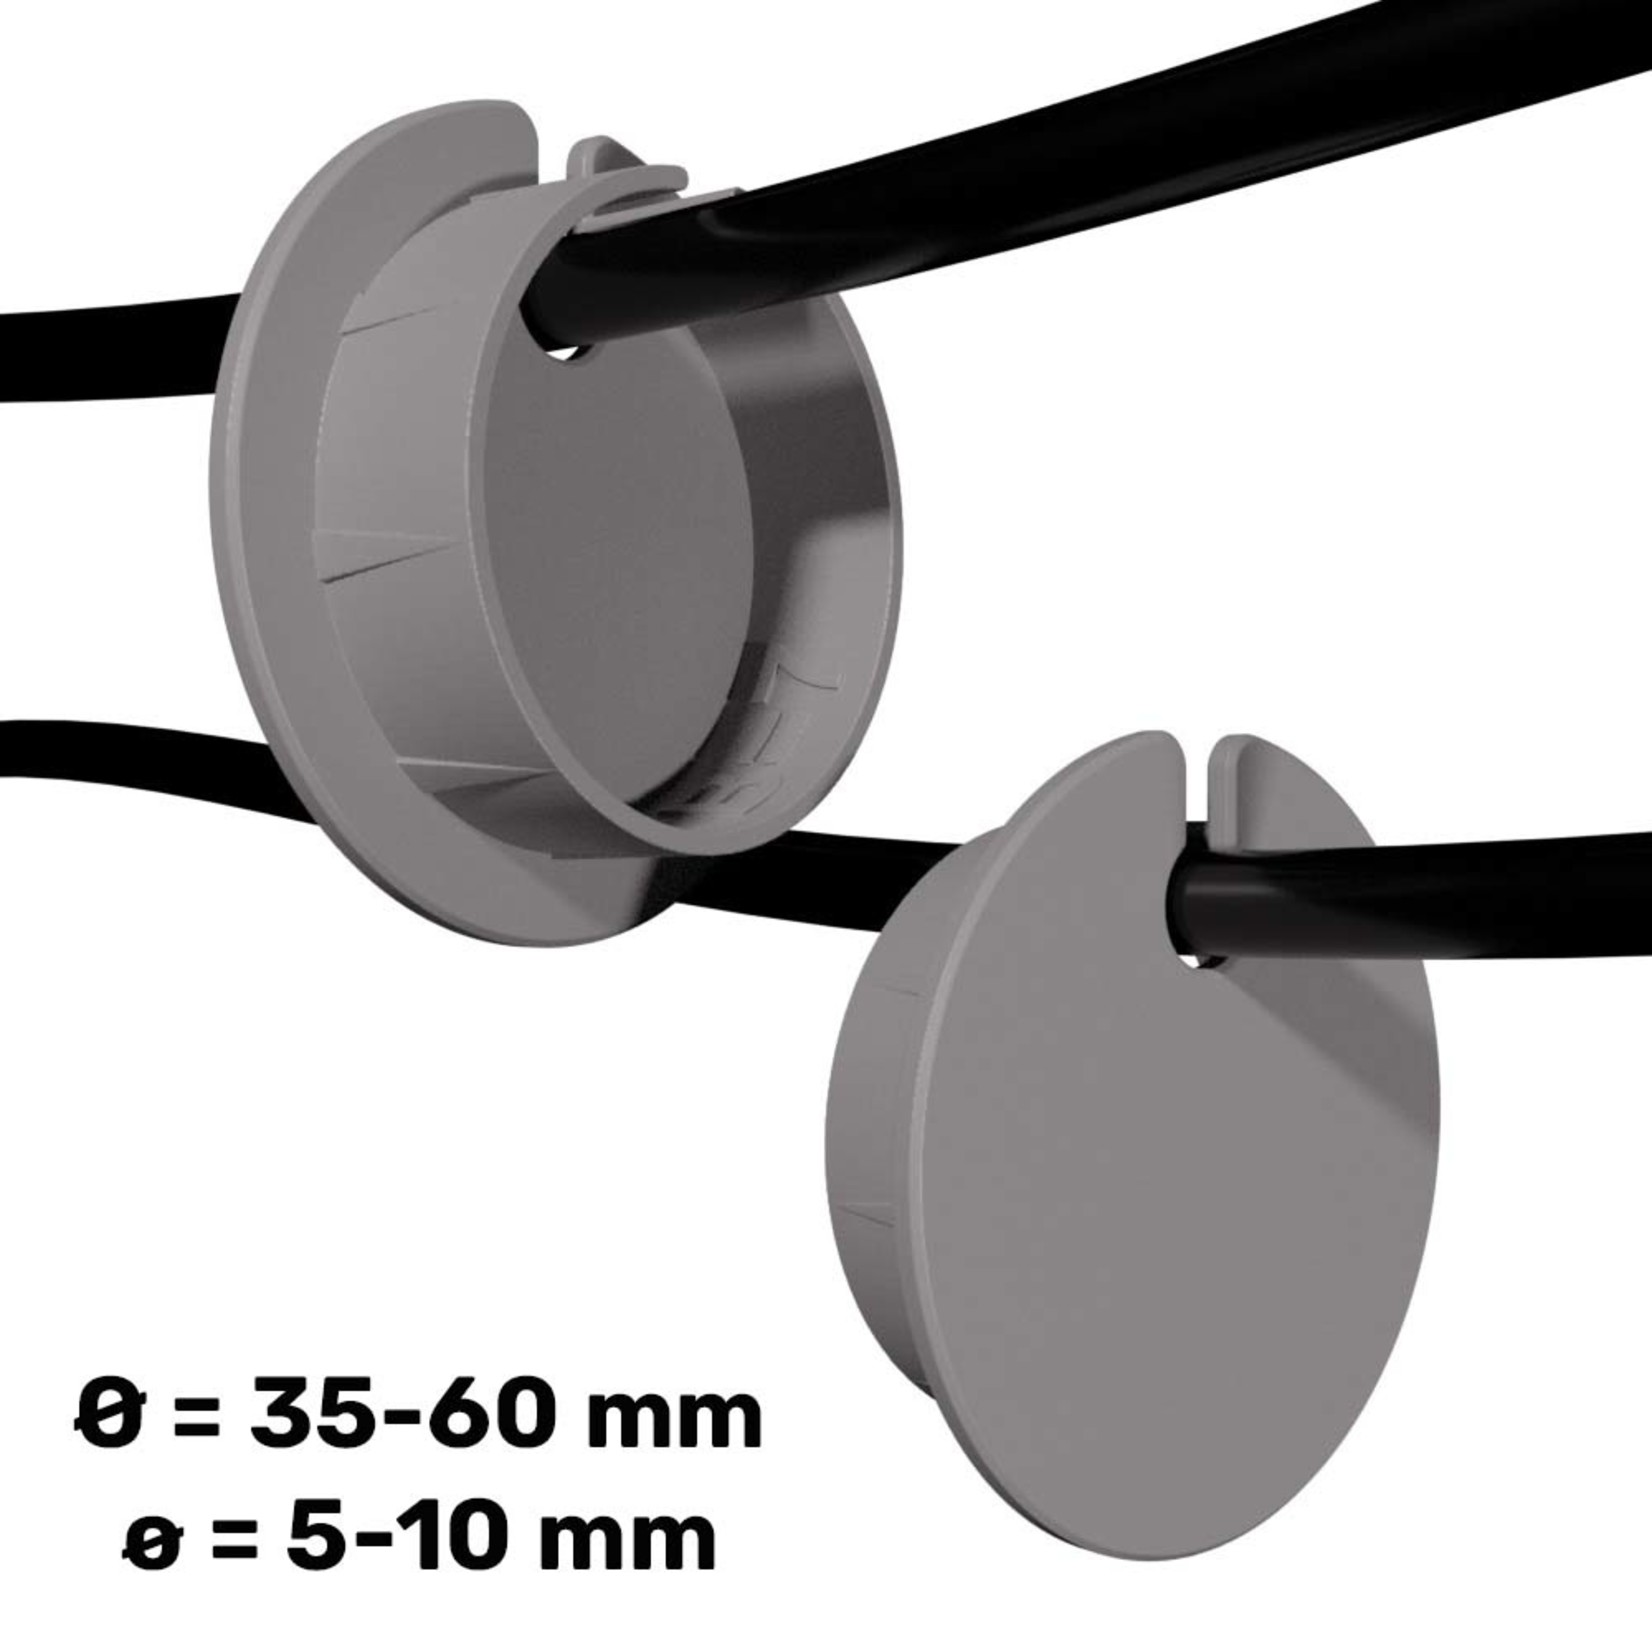 Umake Side cableguide Ø 35-60 mm | Customizable dimensions and colors